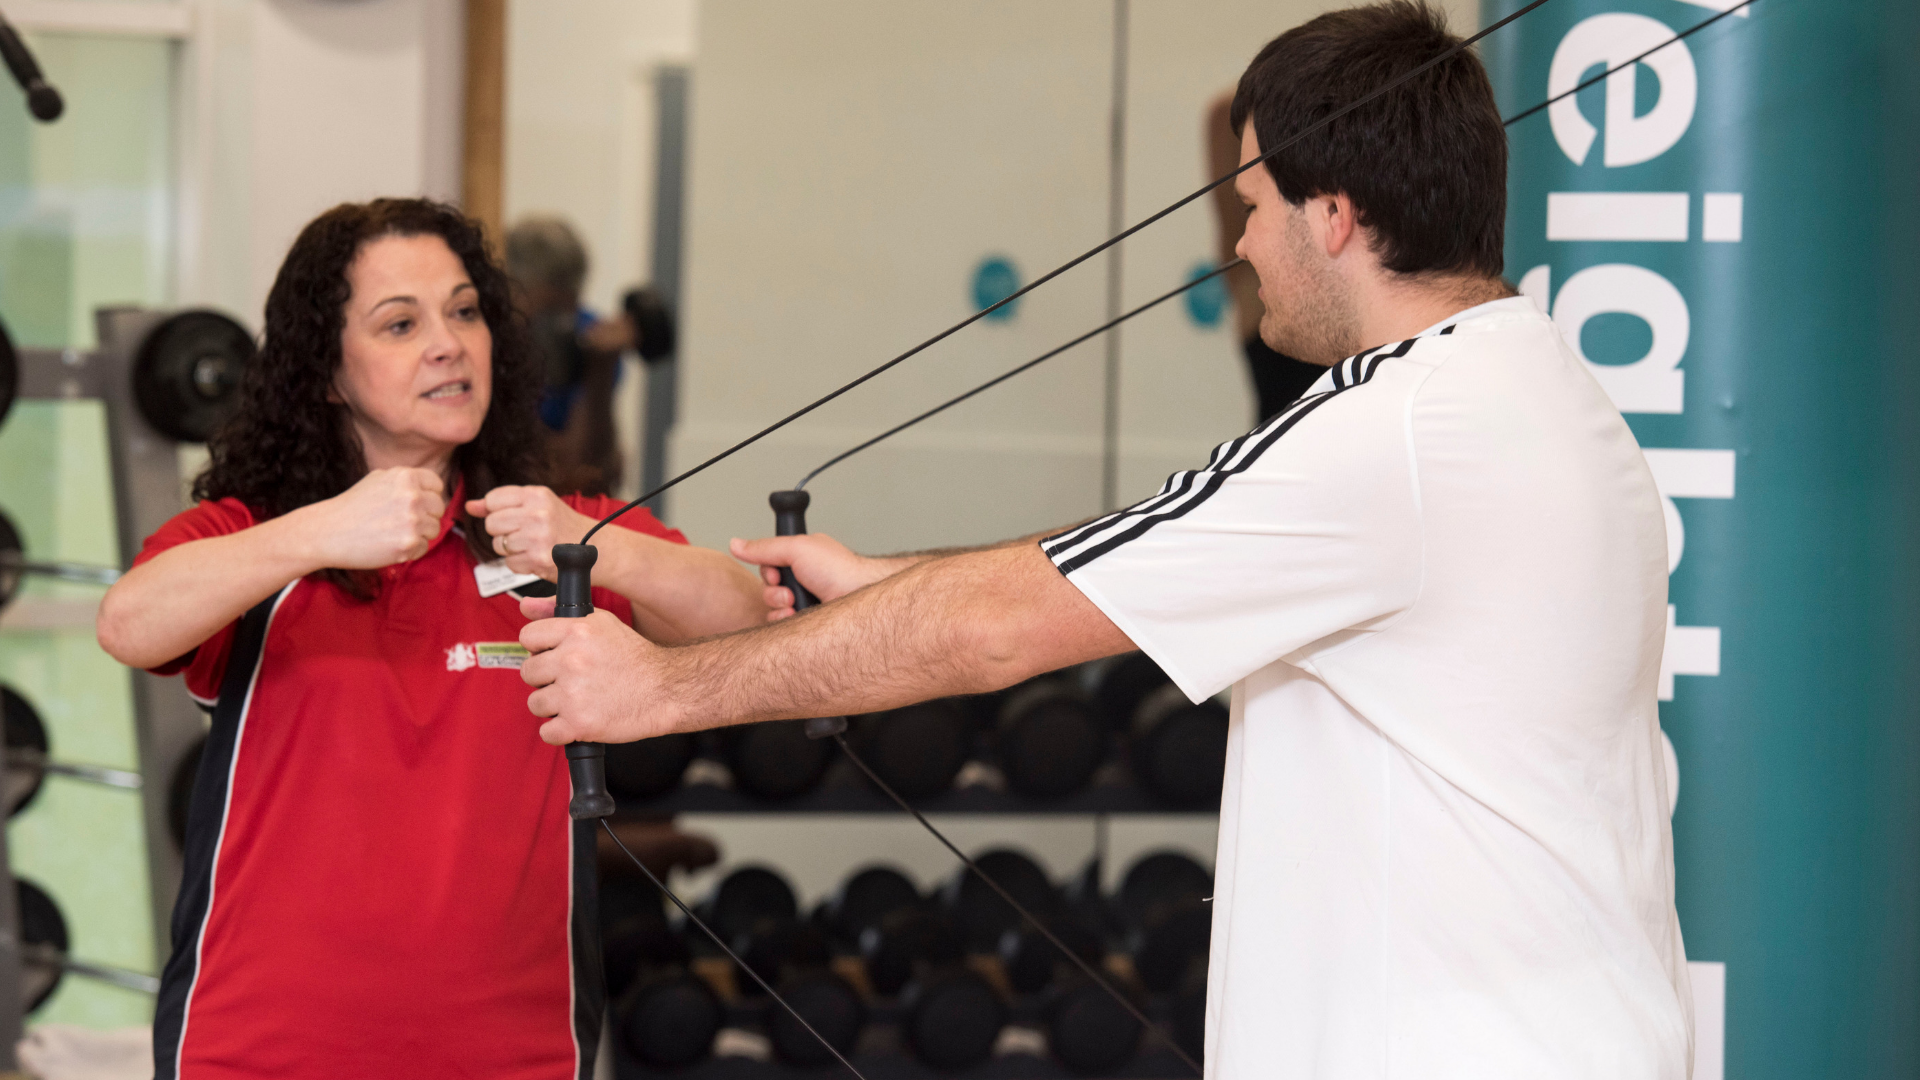 Our gyms are accessible and all abilities are welcome! We have specialist gym equipment and offer advice and guidance on how to use the equipment